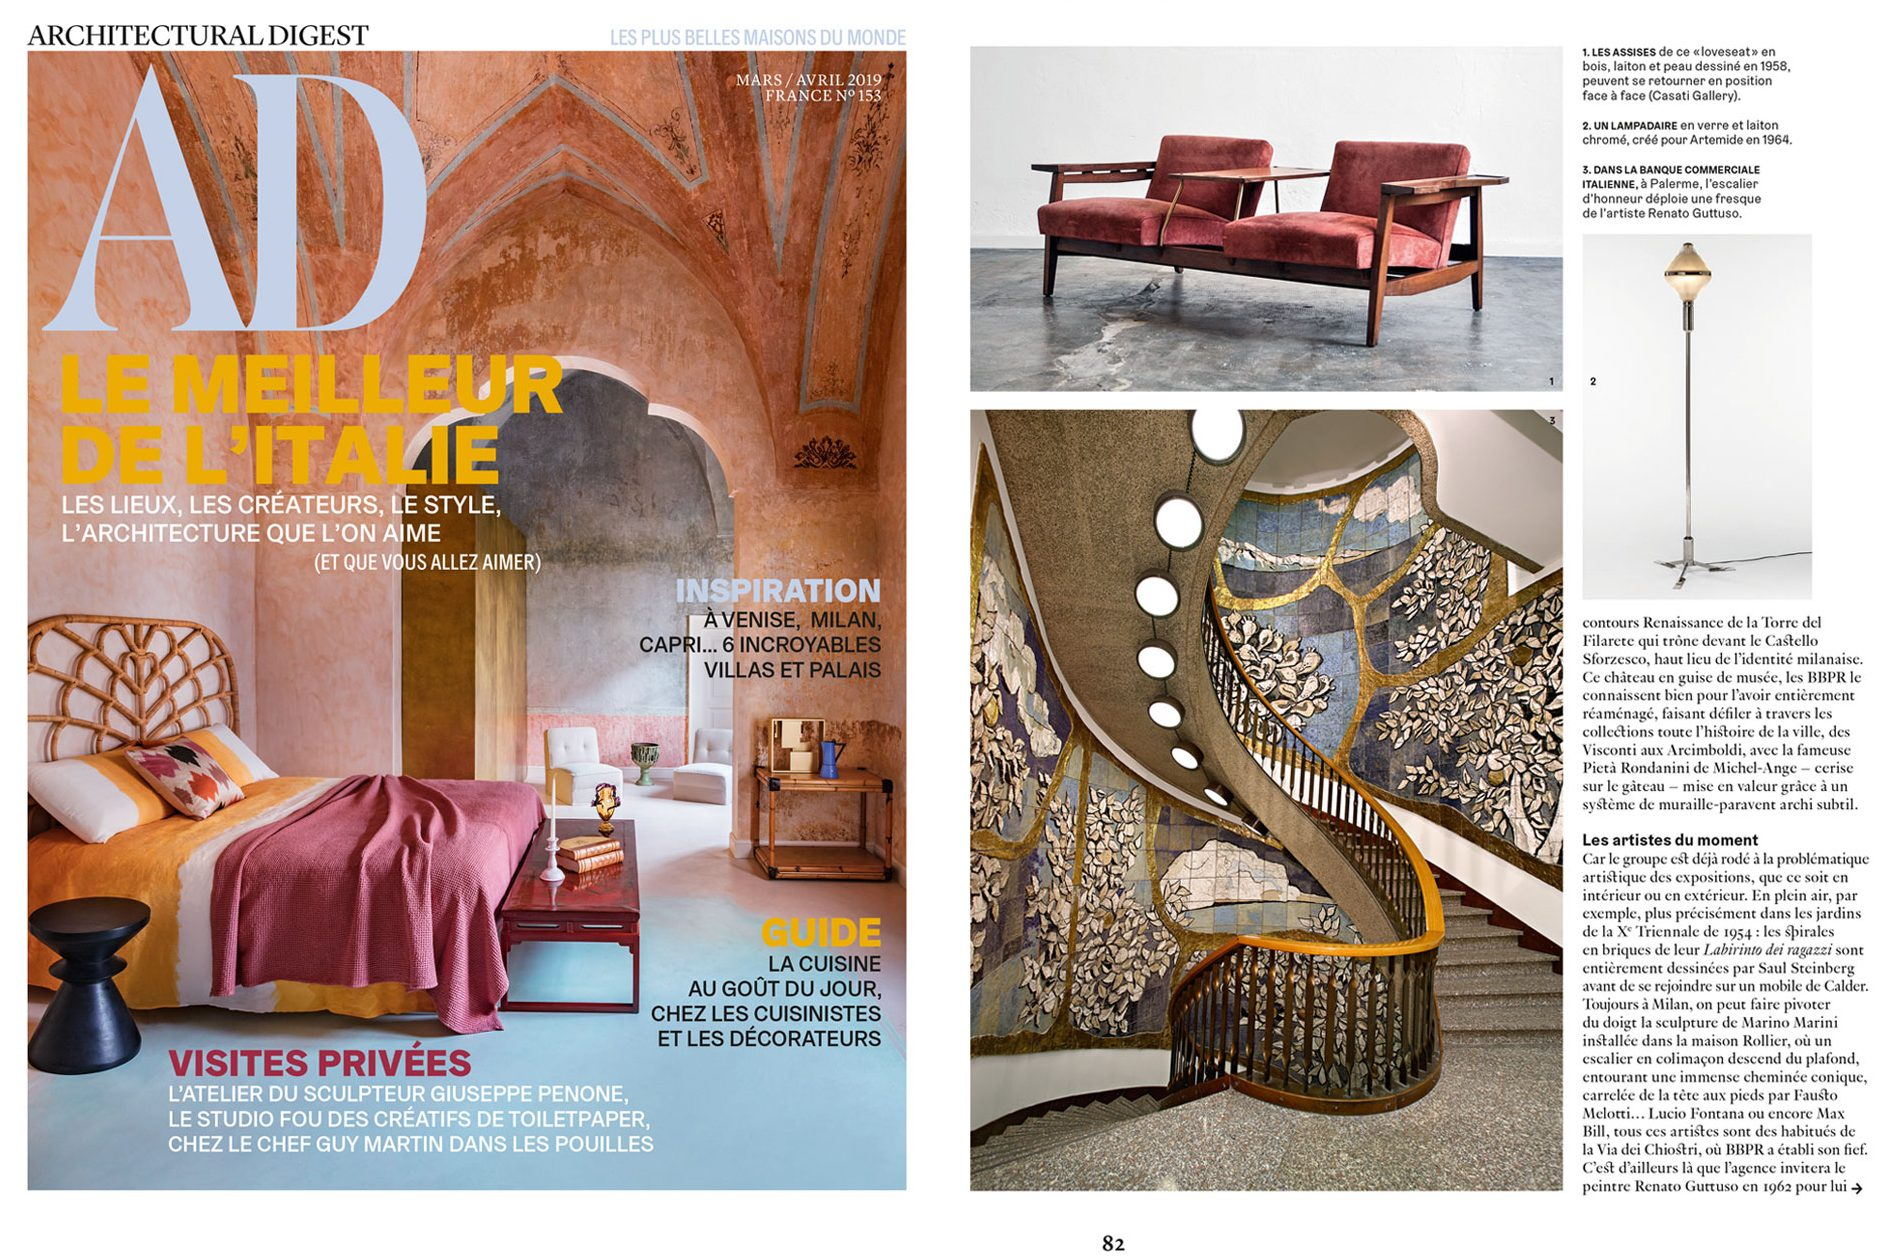 Architectural Digest article on BBPR studio at design and furniture gallery Casati Gallery